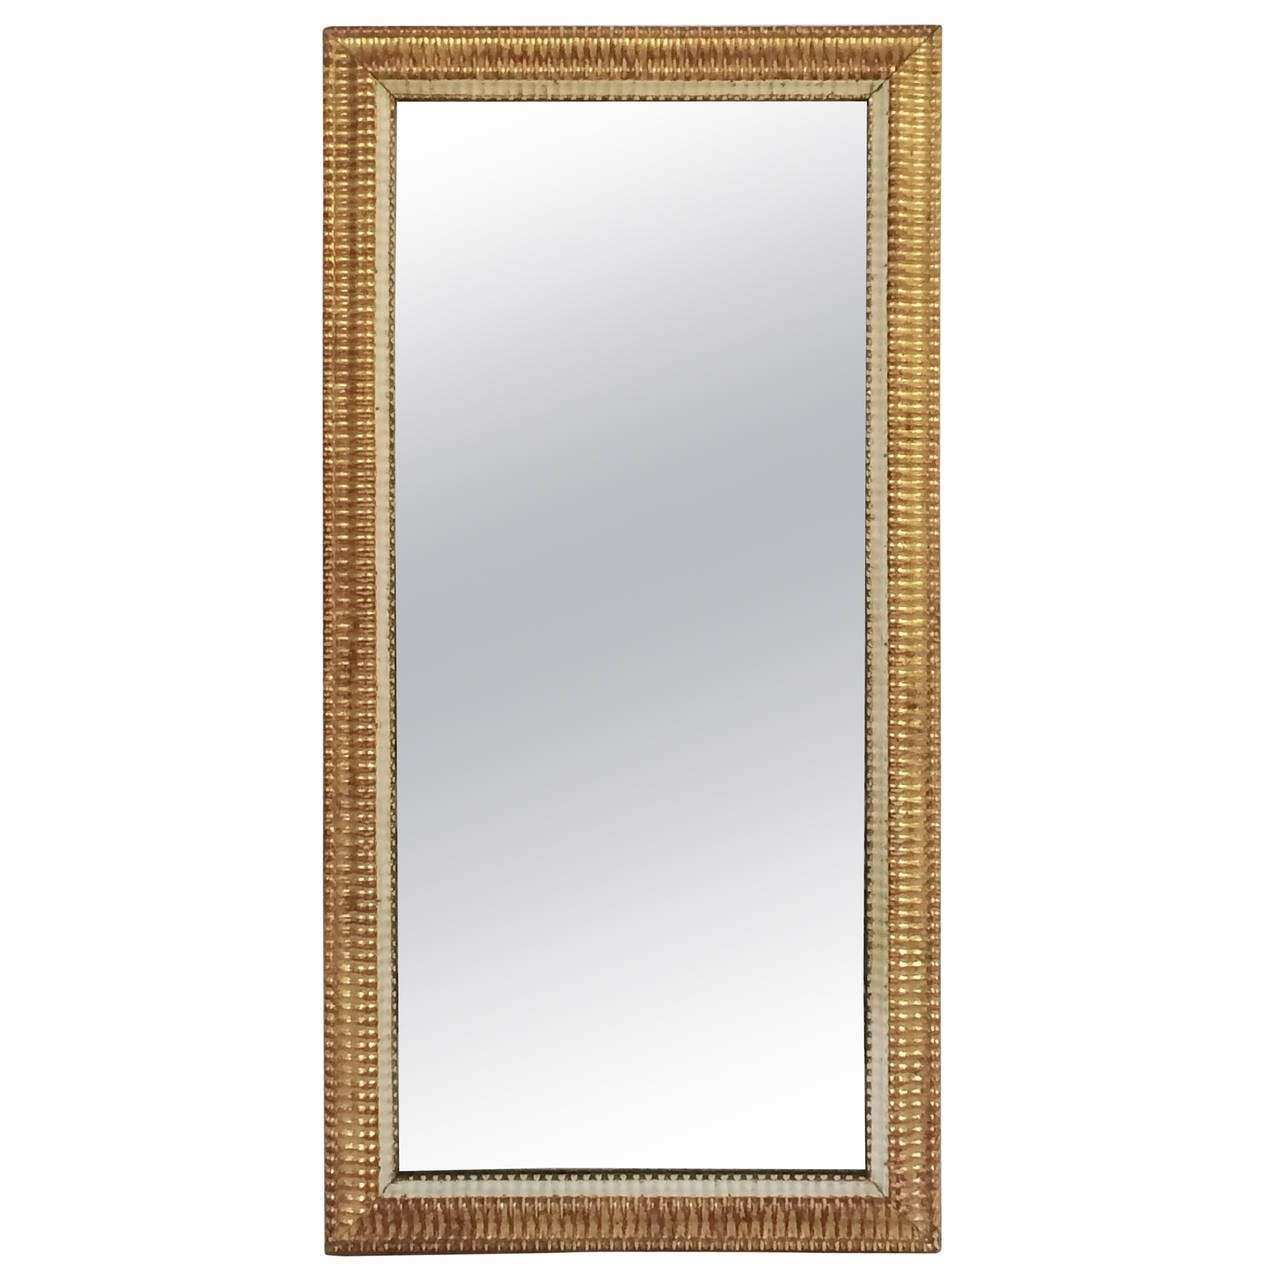 Home Decor Rectangular Wall Mirror Bathroom Sink